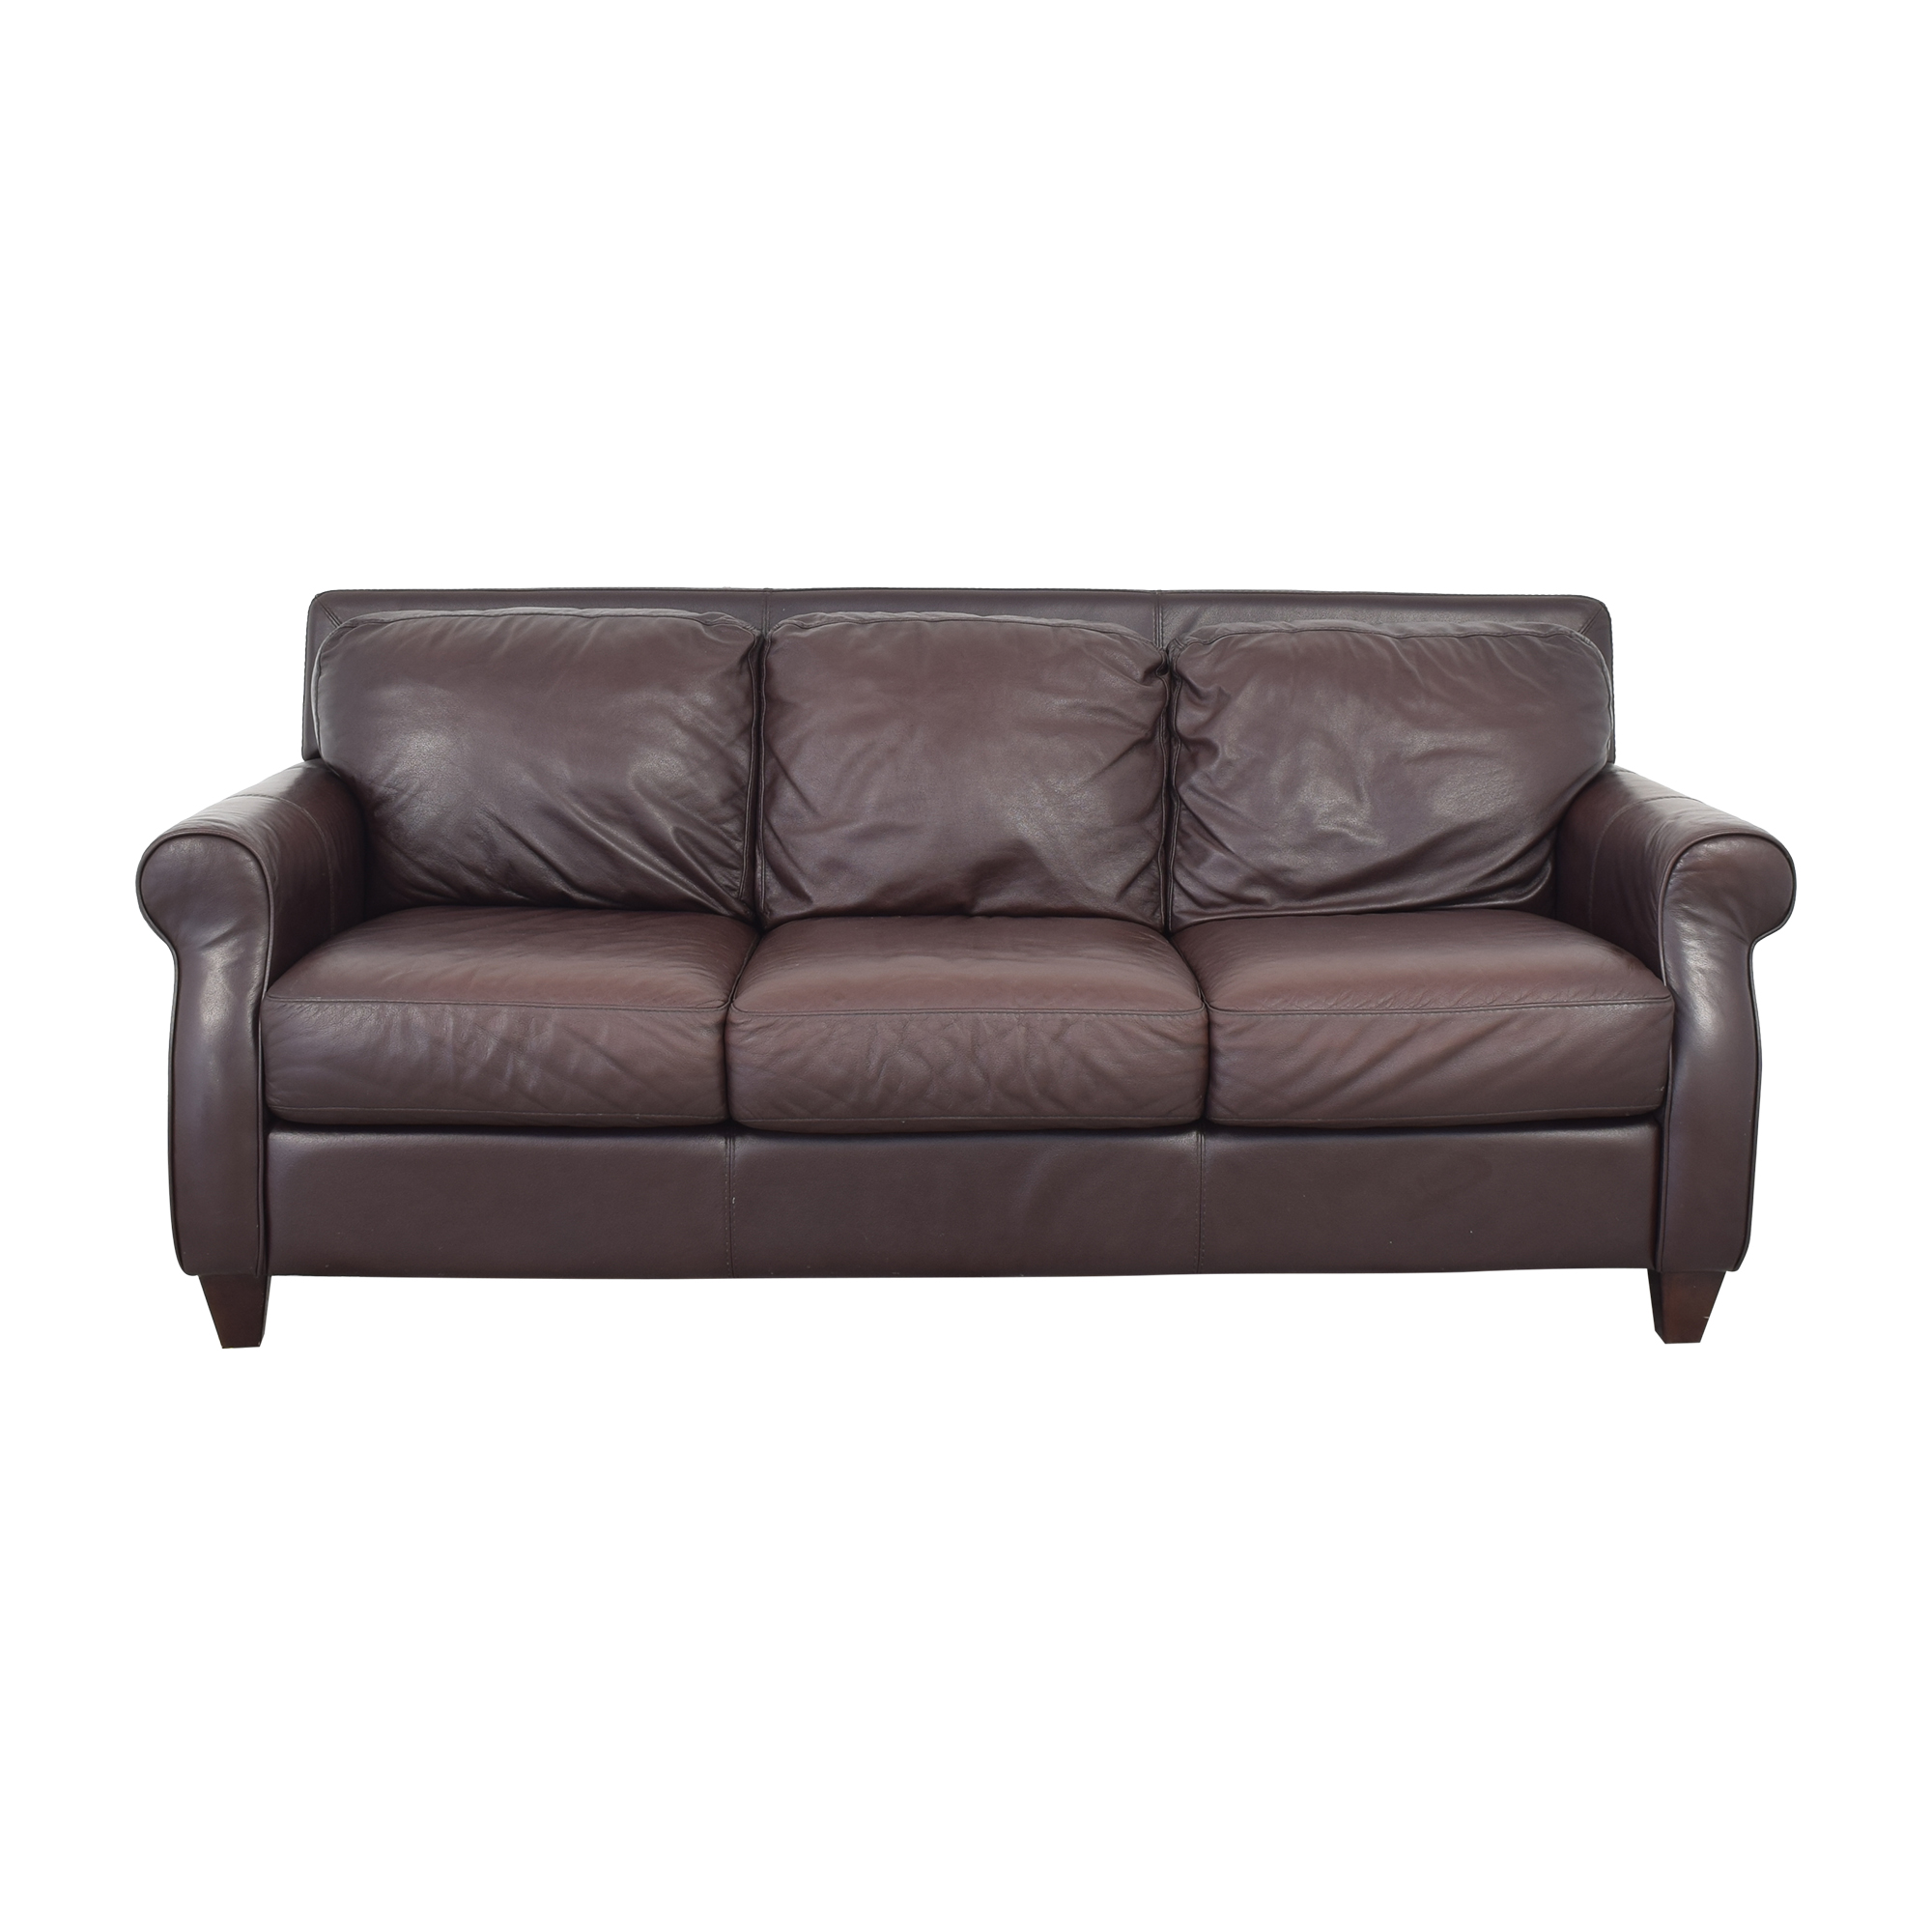 buy Raymour & Flanigan Three Cushion Sofa Raymour & Flanigan Sofas